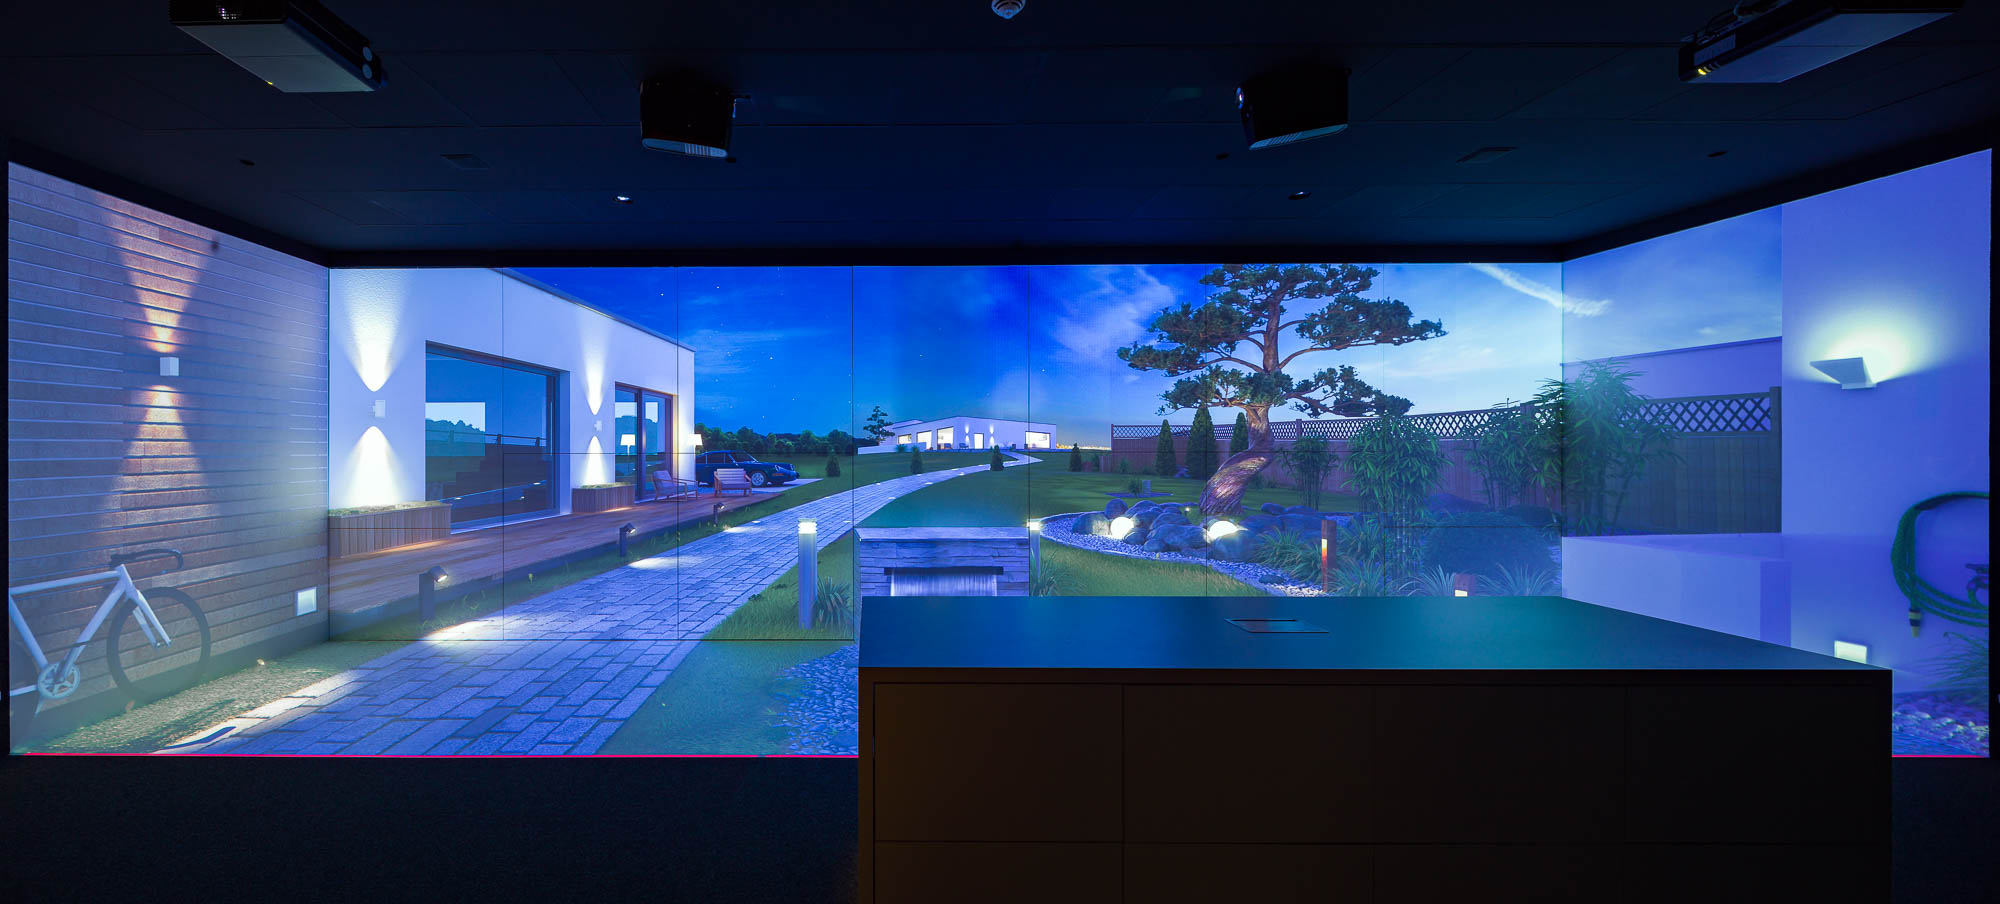 Lighting Experience Space: Virtual outdoor area with SLV lights